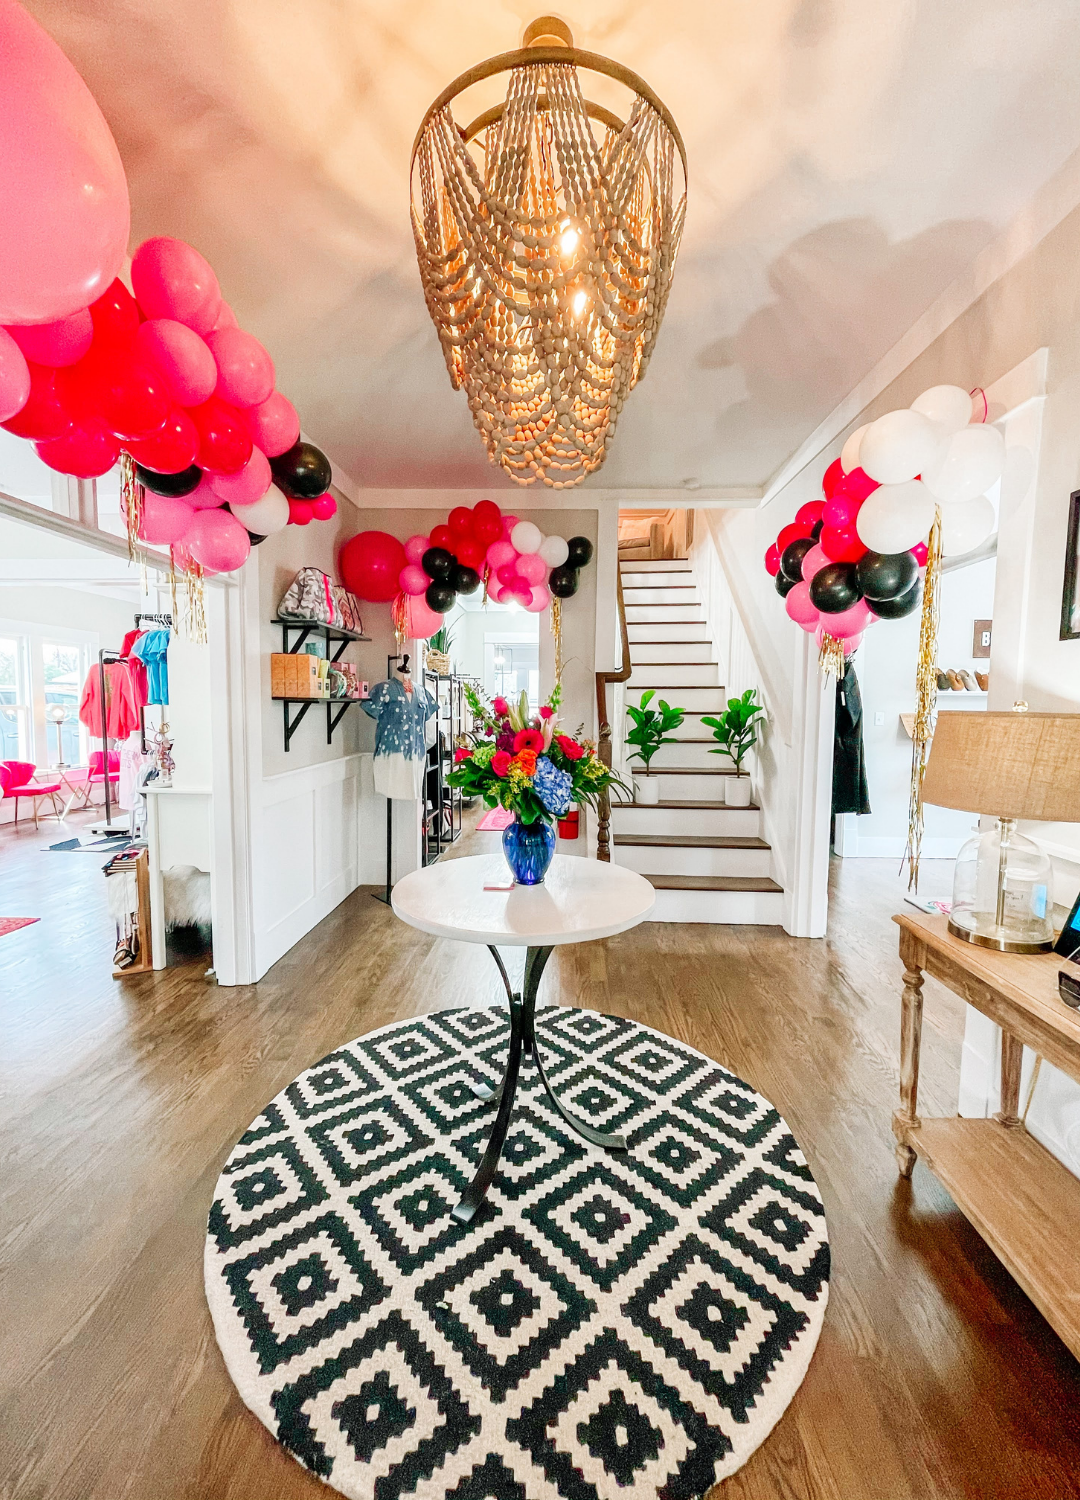 BuDhaGirl's August Store of the Month: Southern Roots Boutique